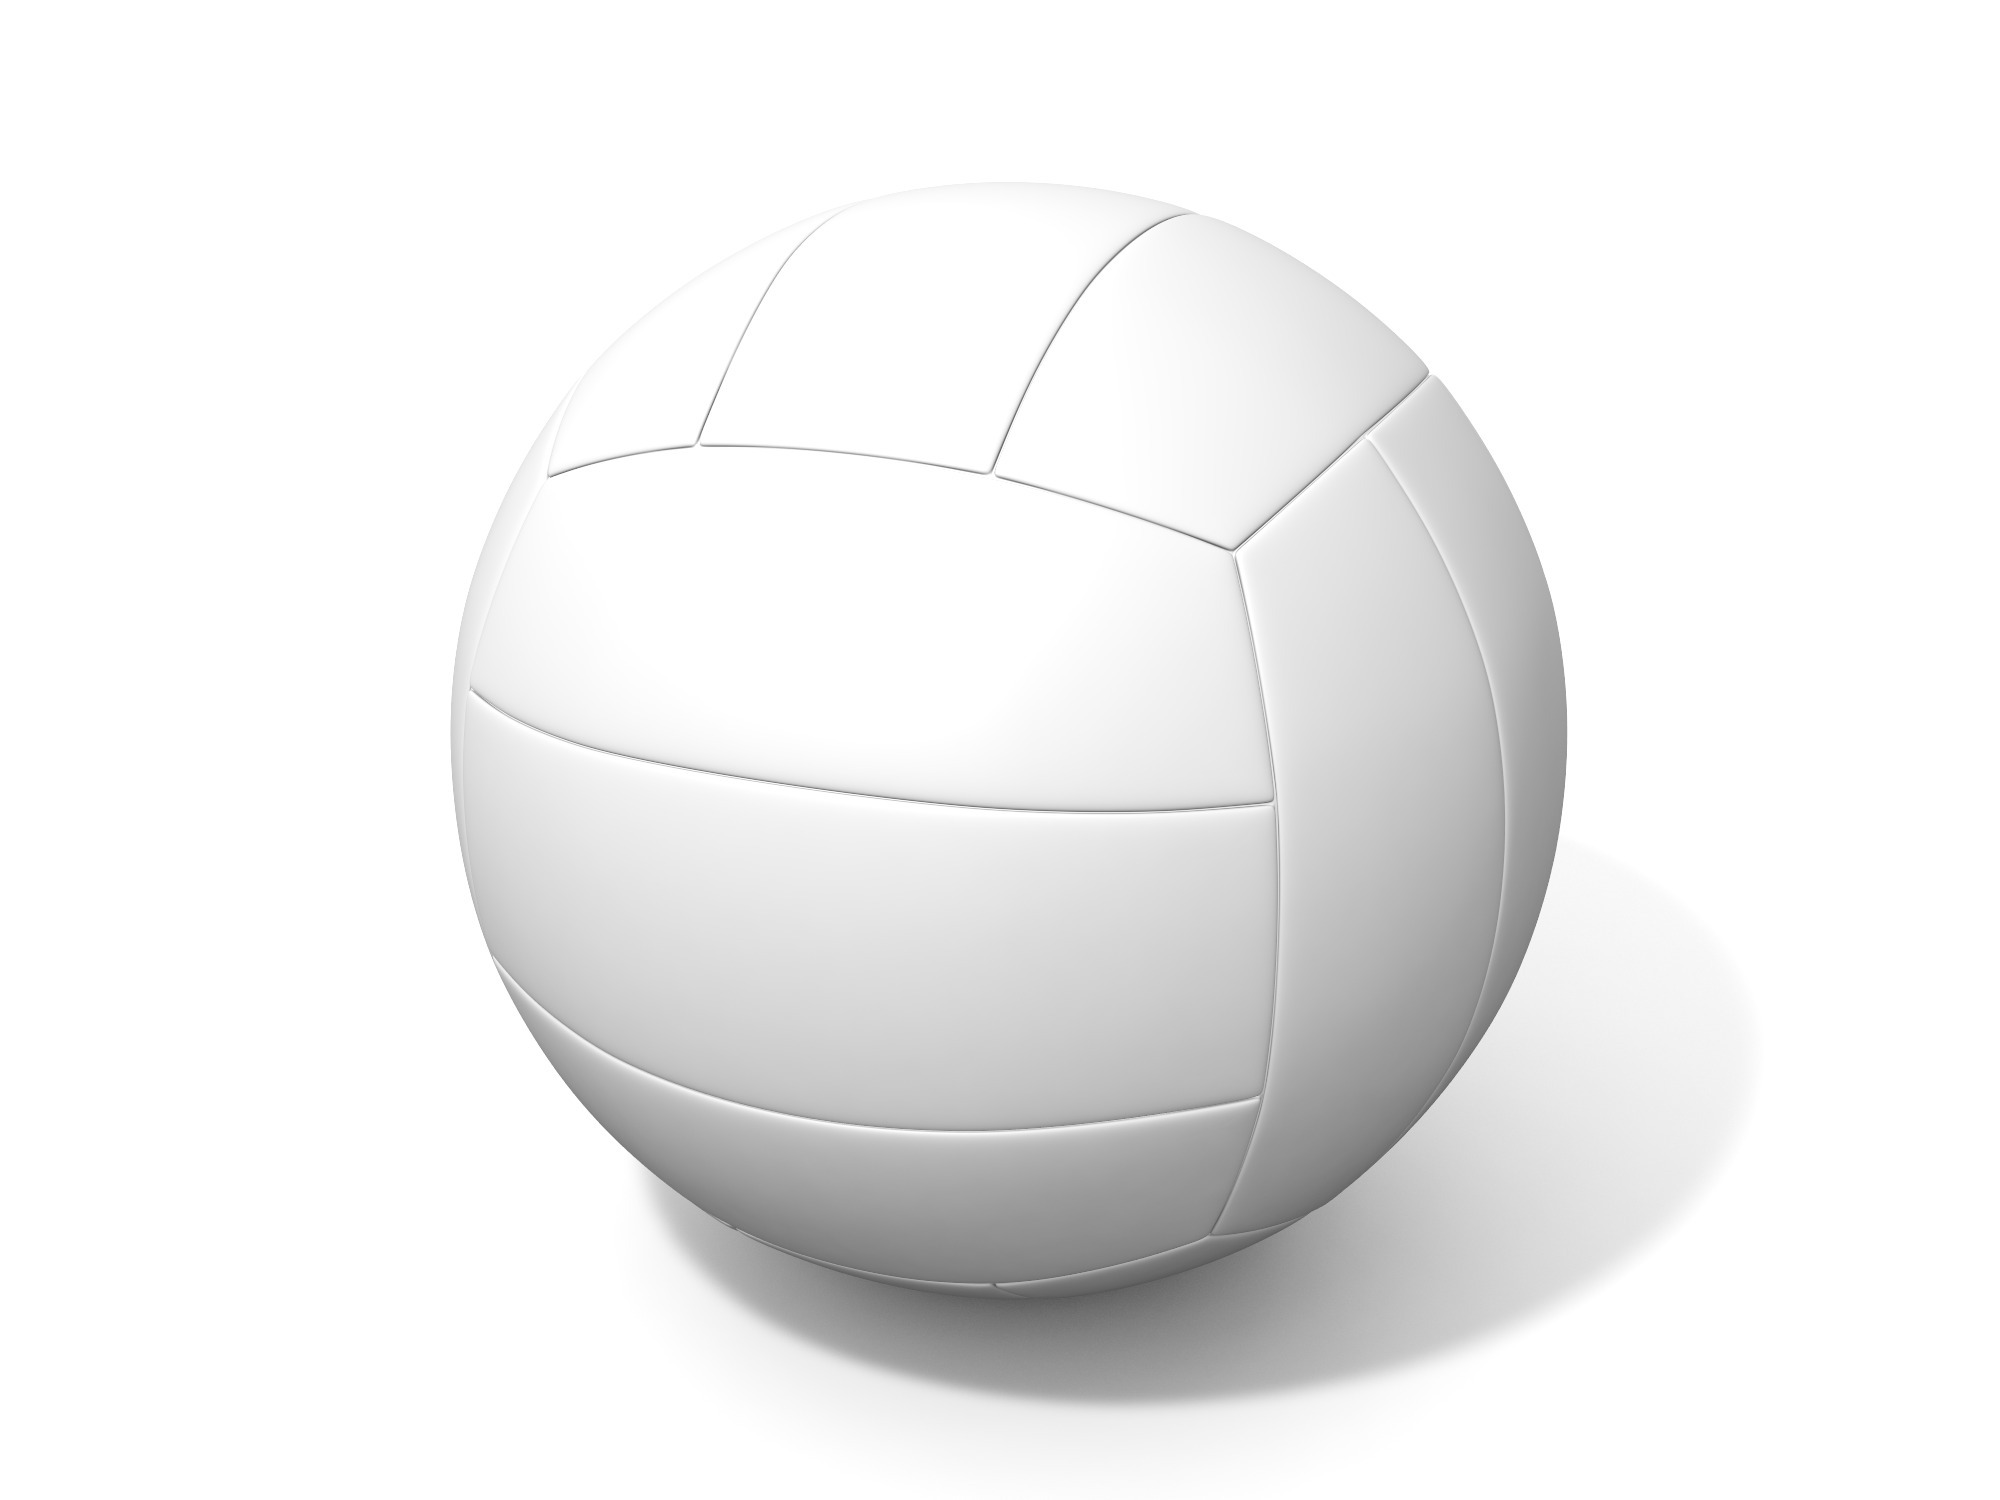 Volleyball ball - 3D design by Vectary assets Nov 6, 2018